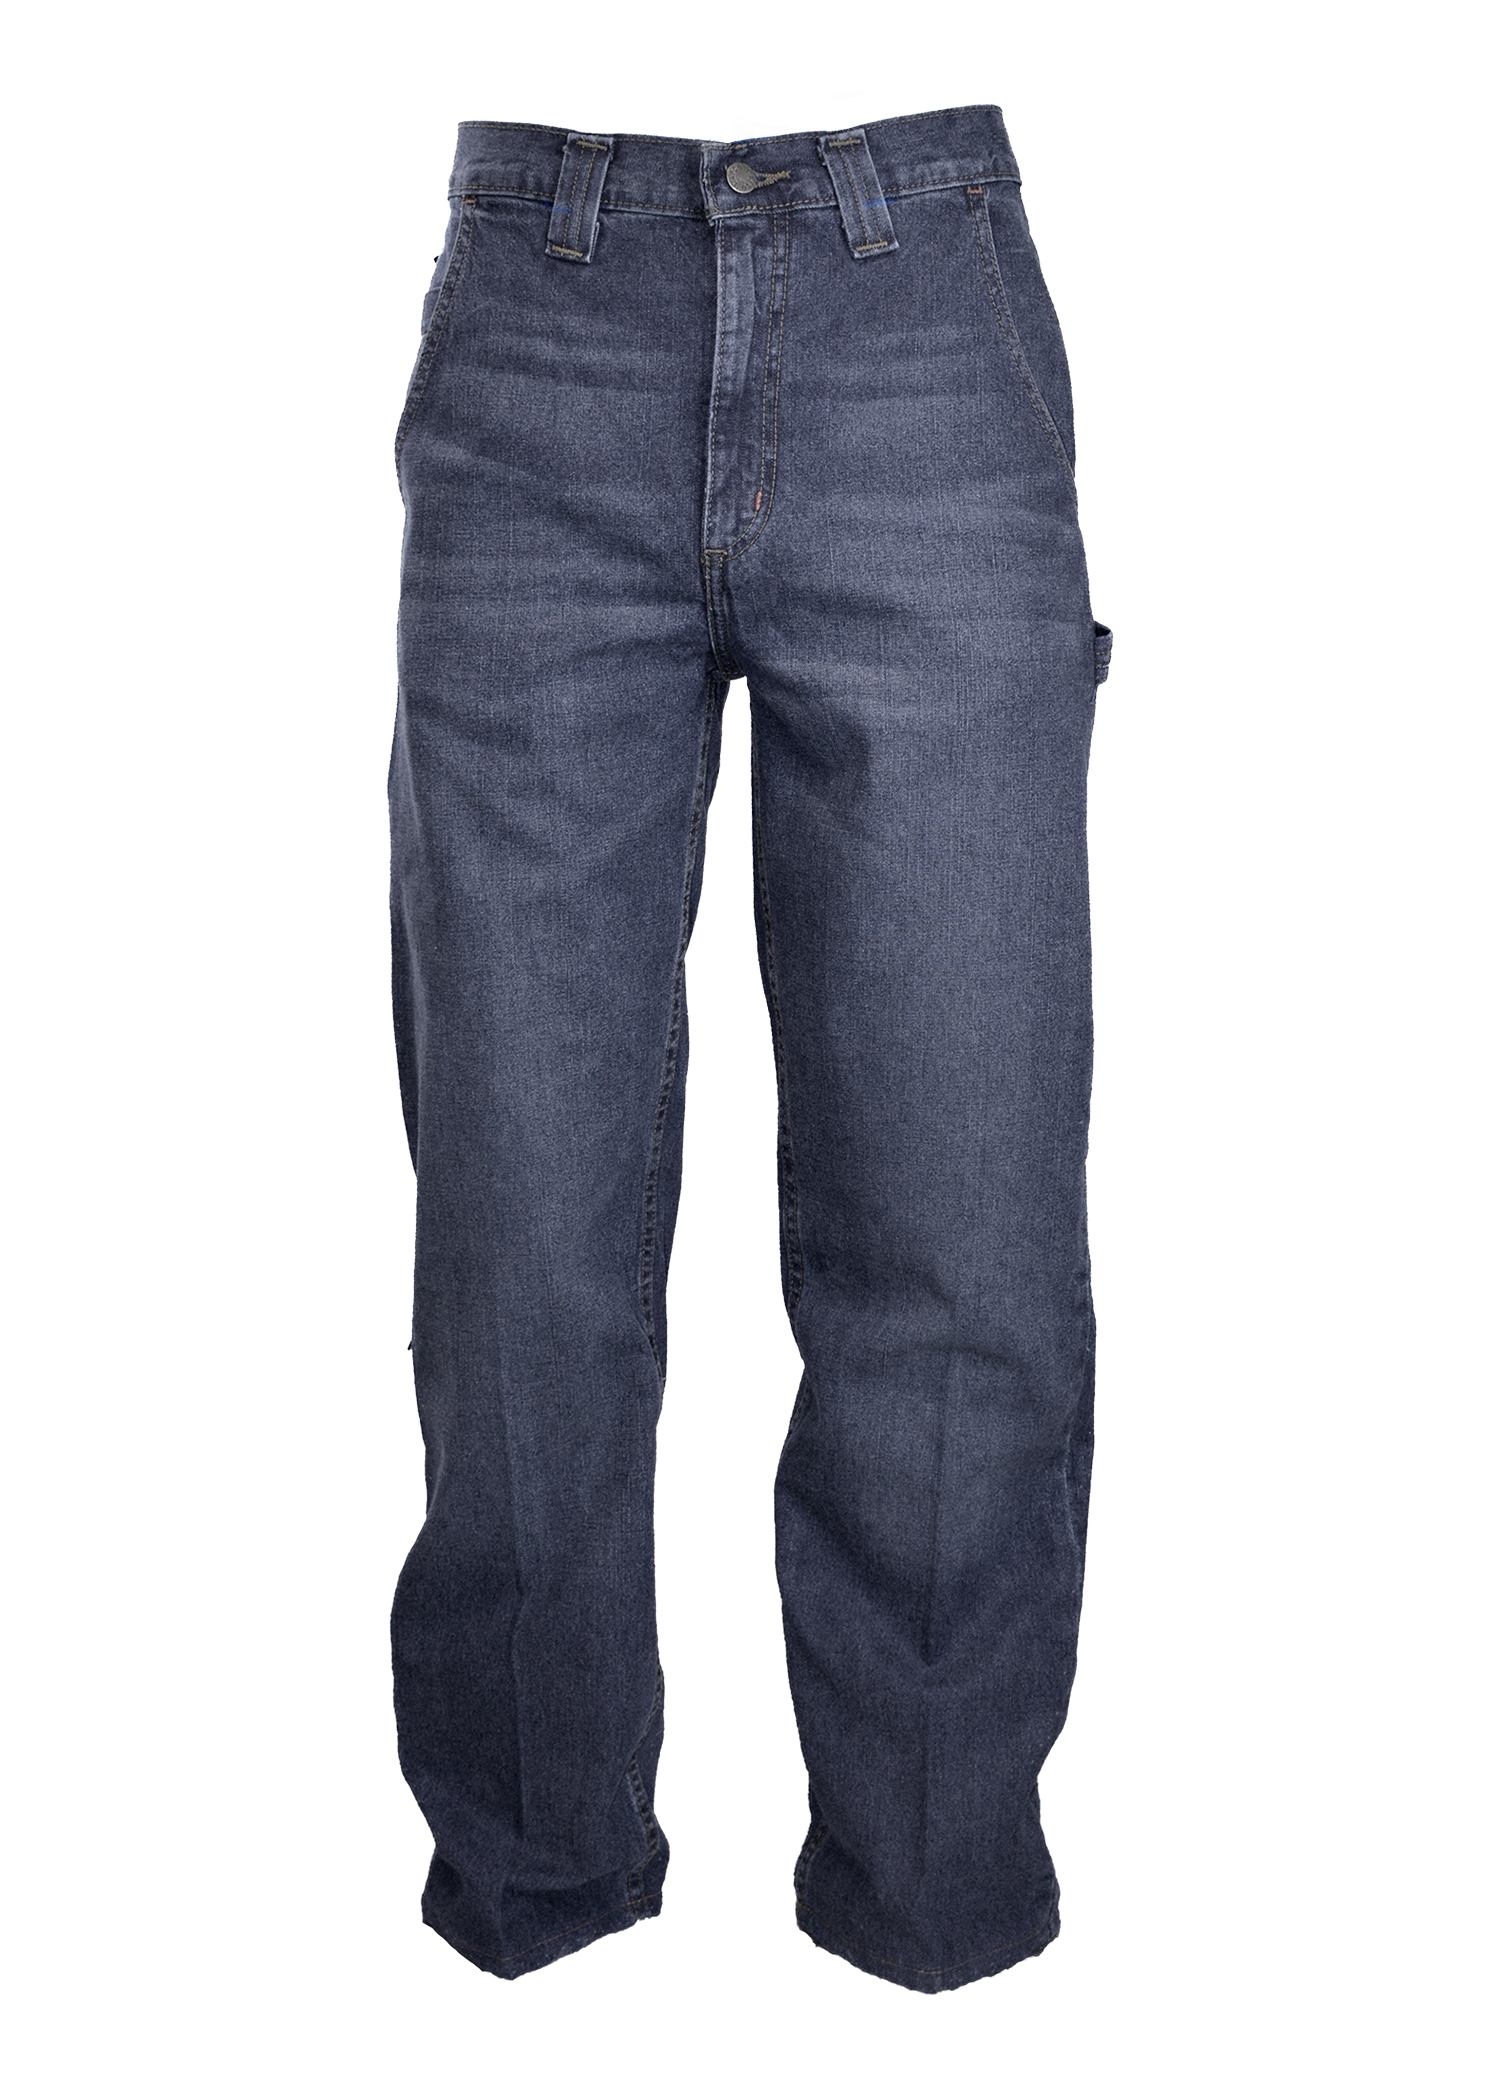 10oz. FR Modern Carpenter Jeans | 100% Cotton